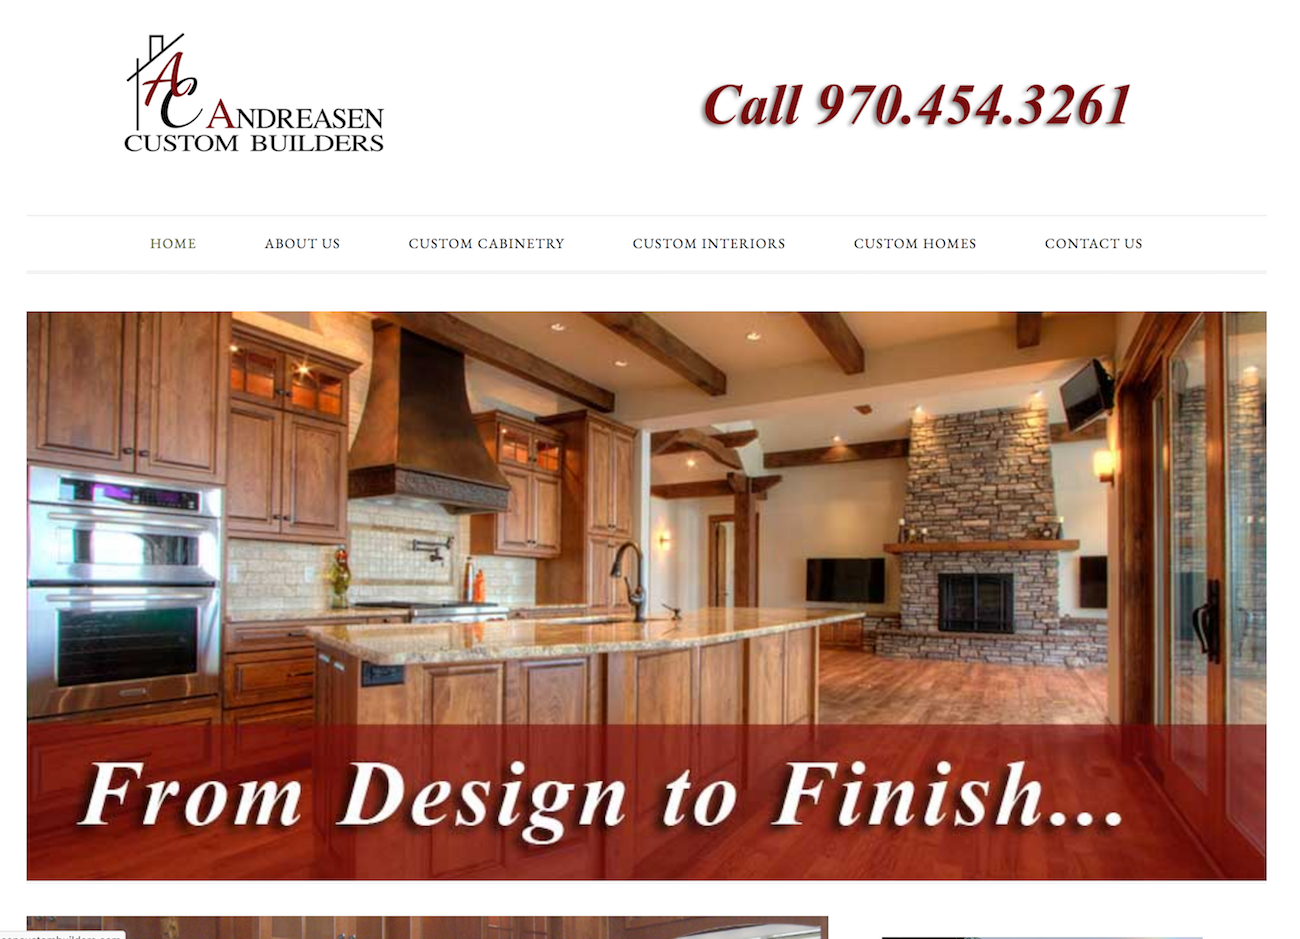 andraesen custom builders